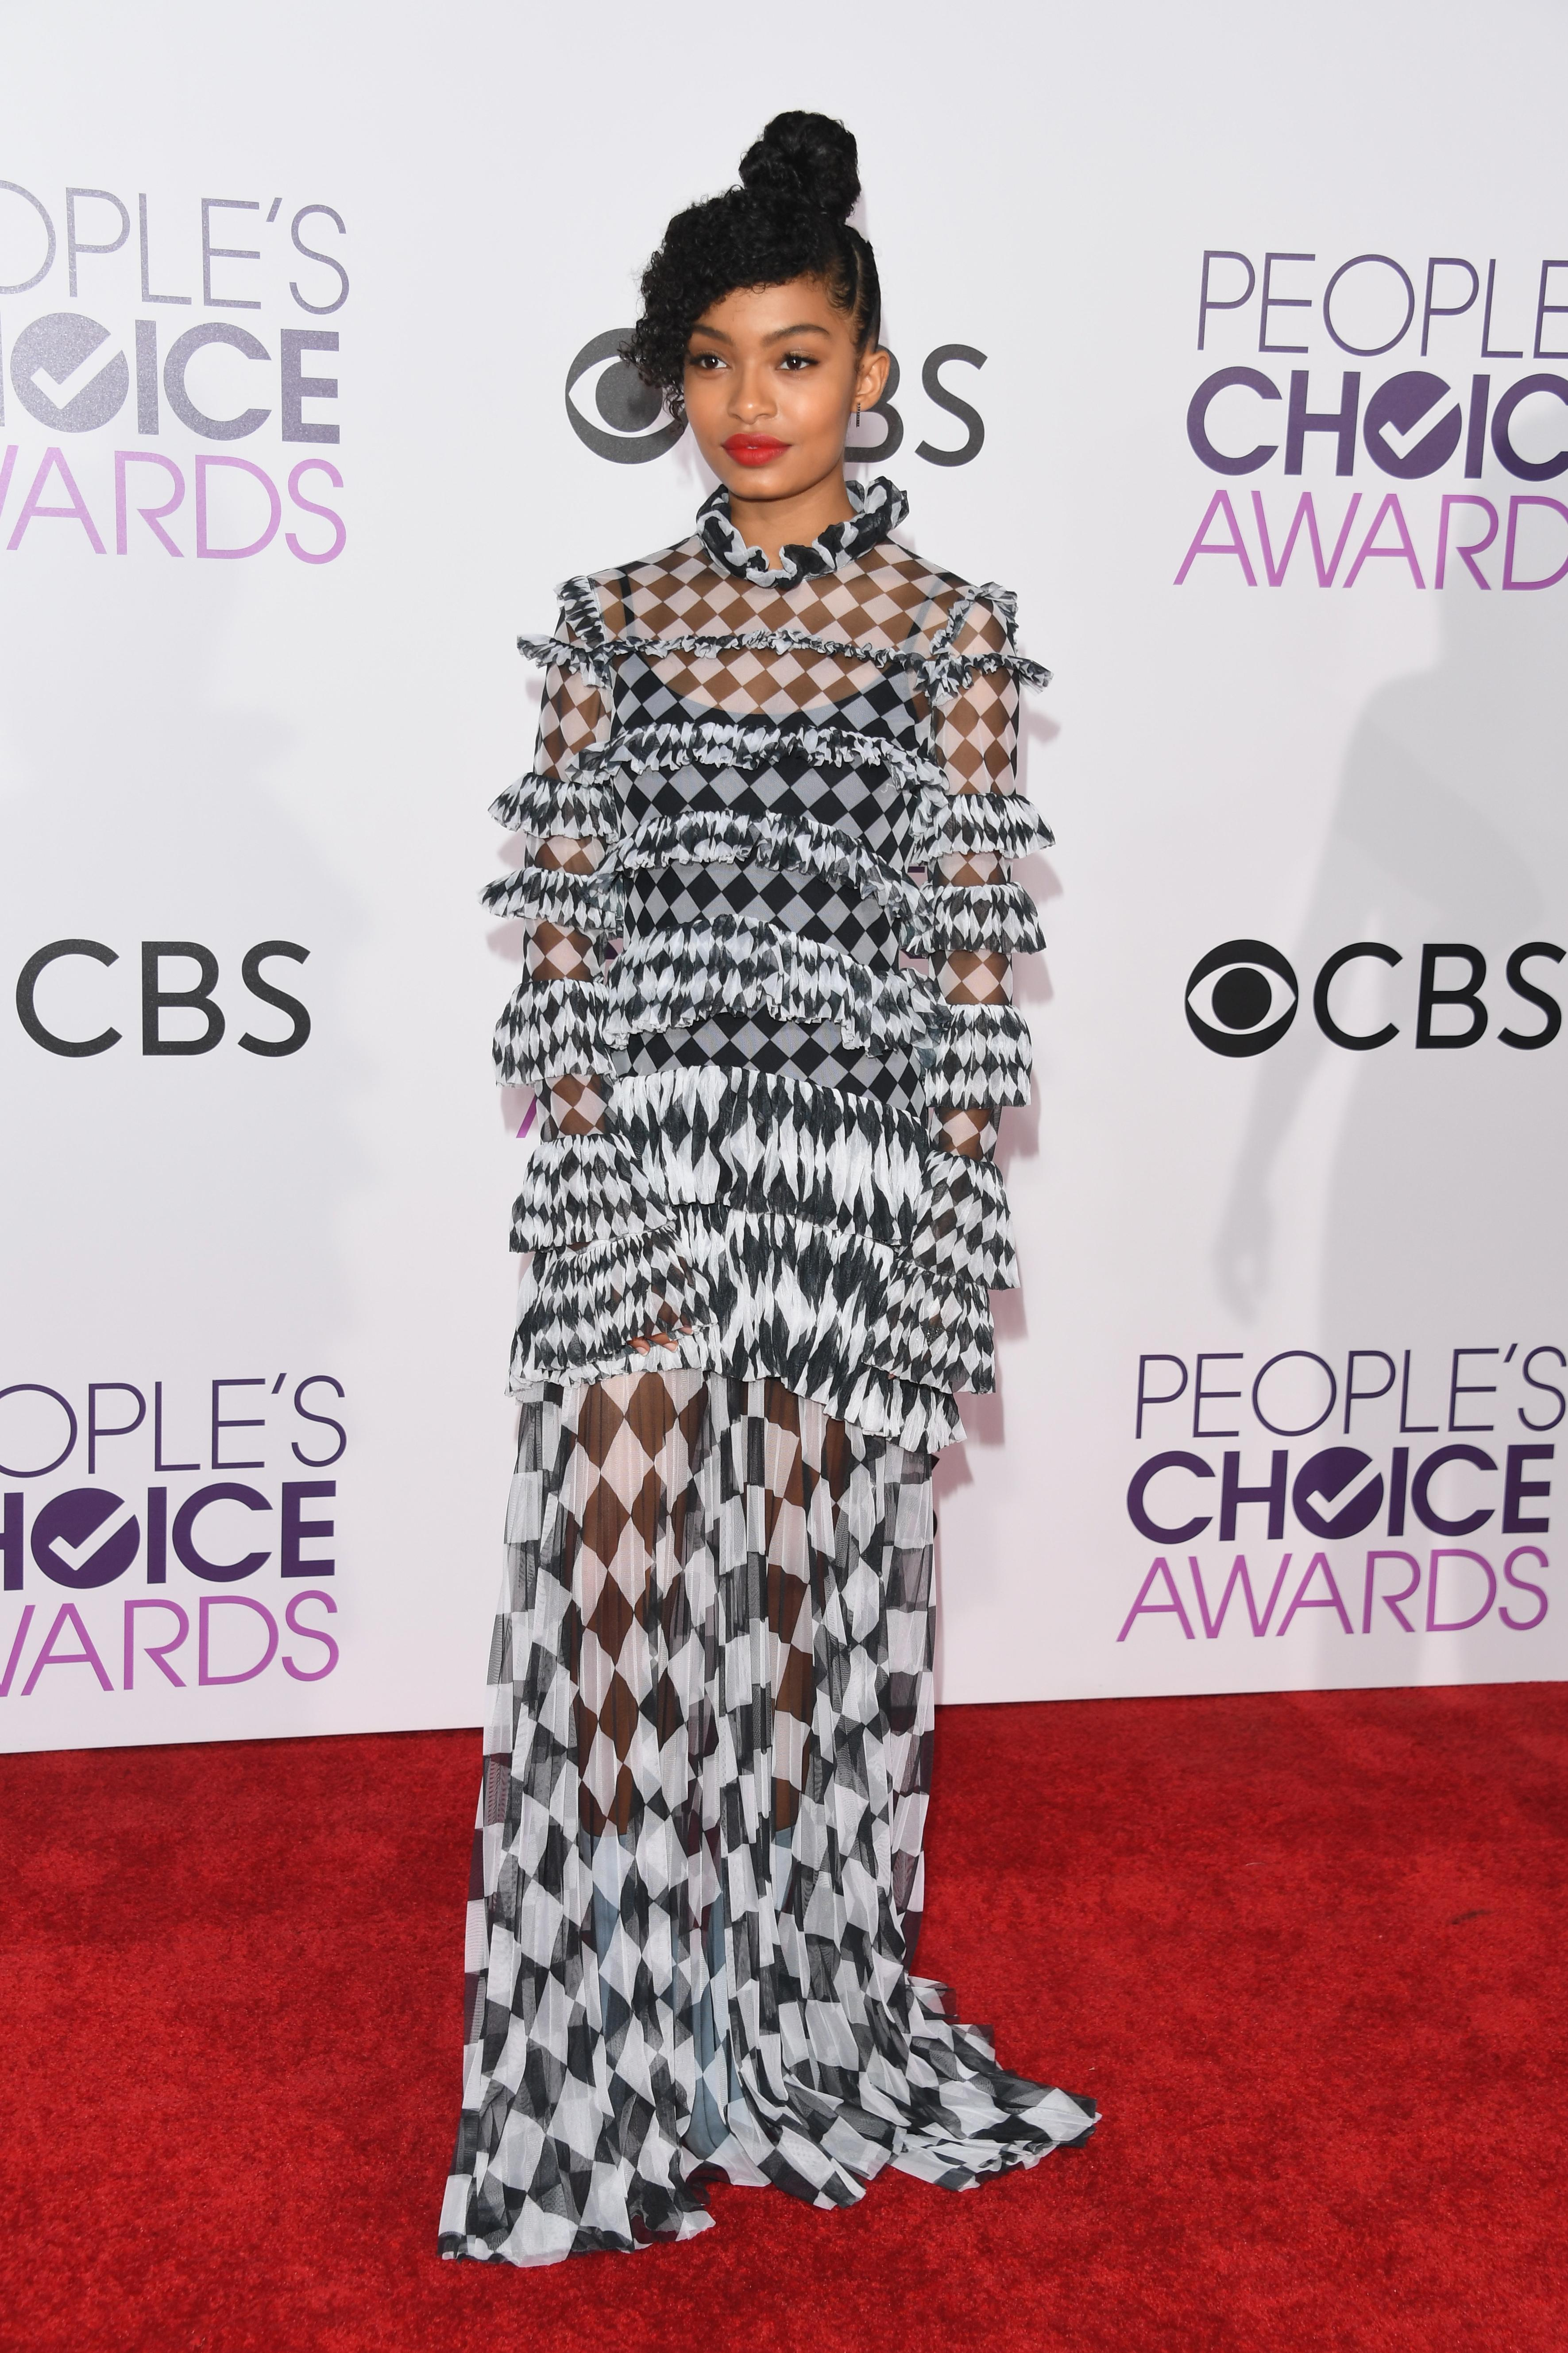 Image result for PEOPLE'S CHOICE AWARDS 2017 RED CARPET ARRIVALS